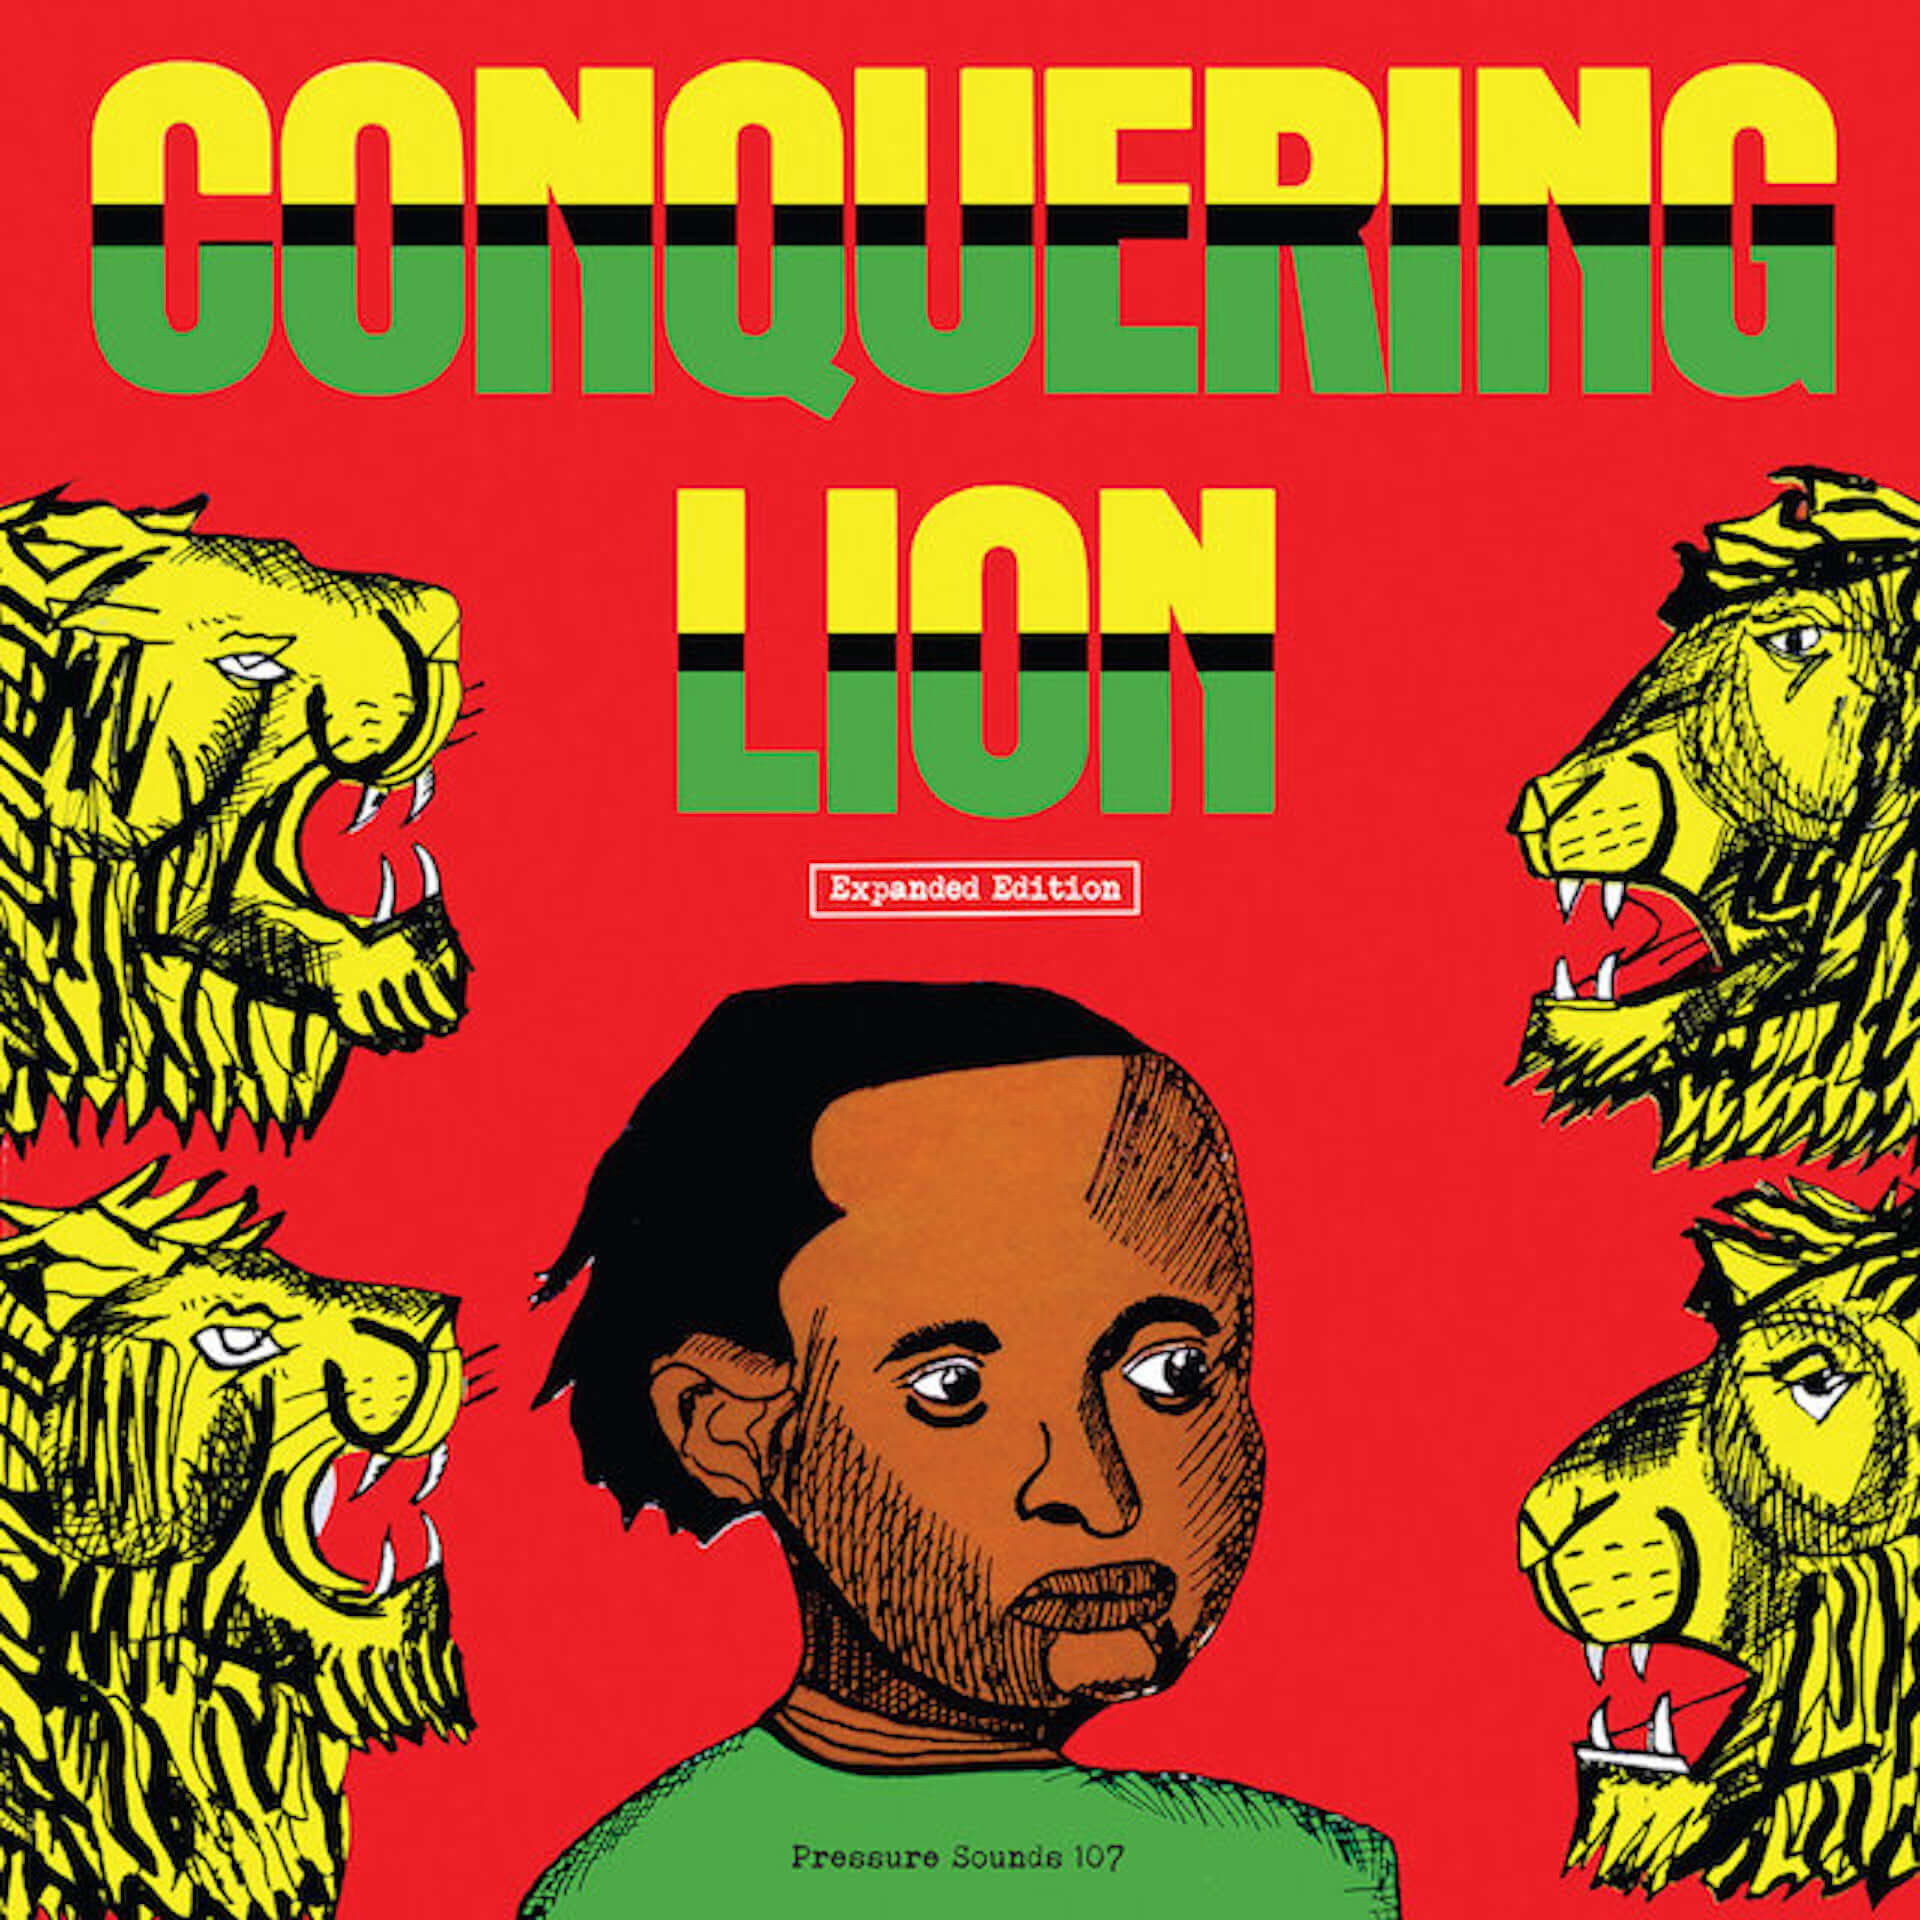 Yabby You & The Prophets『Conquering Lion』が名門〈Pressure Sounds〉からリイシュー!King Tubbyによるリミックス楽曲も収録 music210305_yabbyyou-theprophets_1-1920x1920